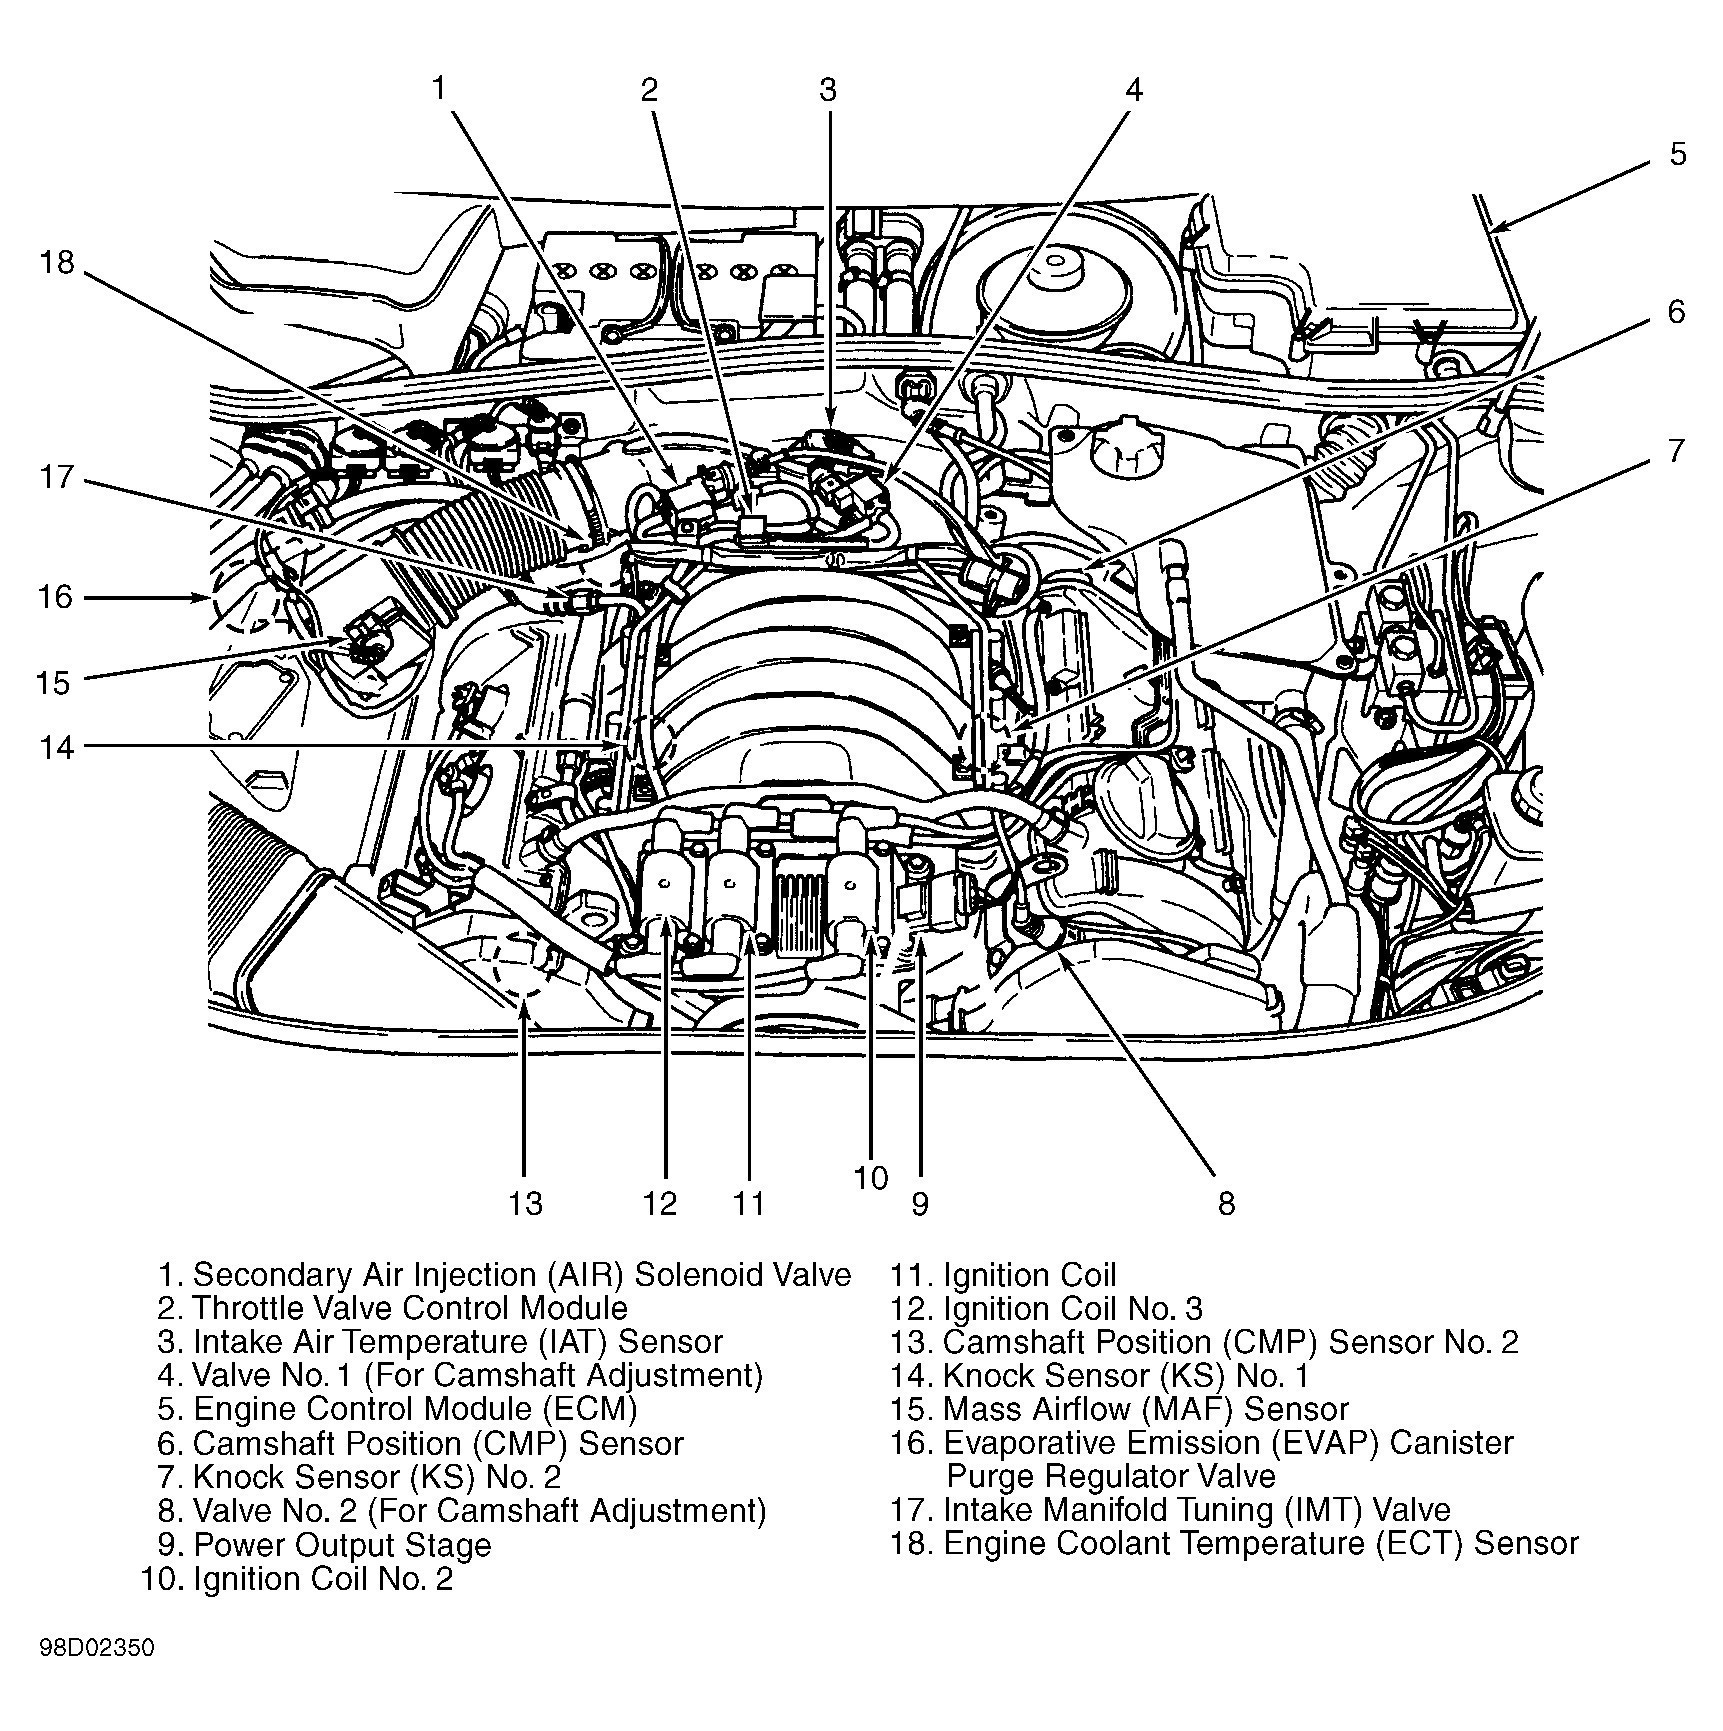 Toyota 3 0 V6 Engine Diagram V6 Engine Diagram 3 8 1984 Diagram Data Schema Exp Of Toyota 3 0 V6 Engine Diagram ford V6 3 7 Engine Diagram Wiring Diagram Imp